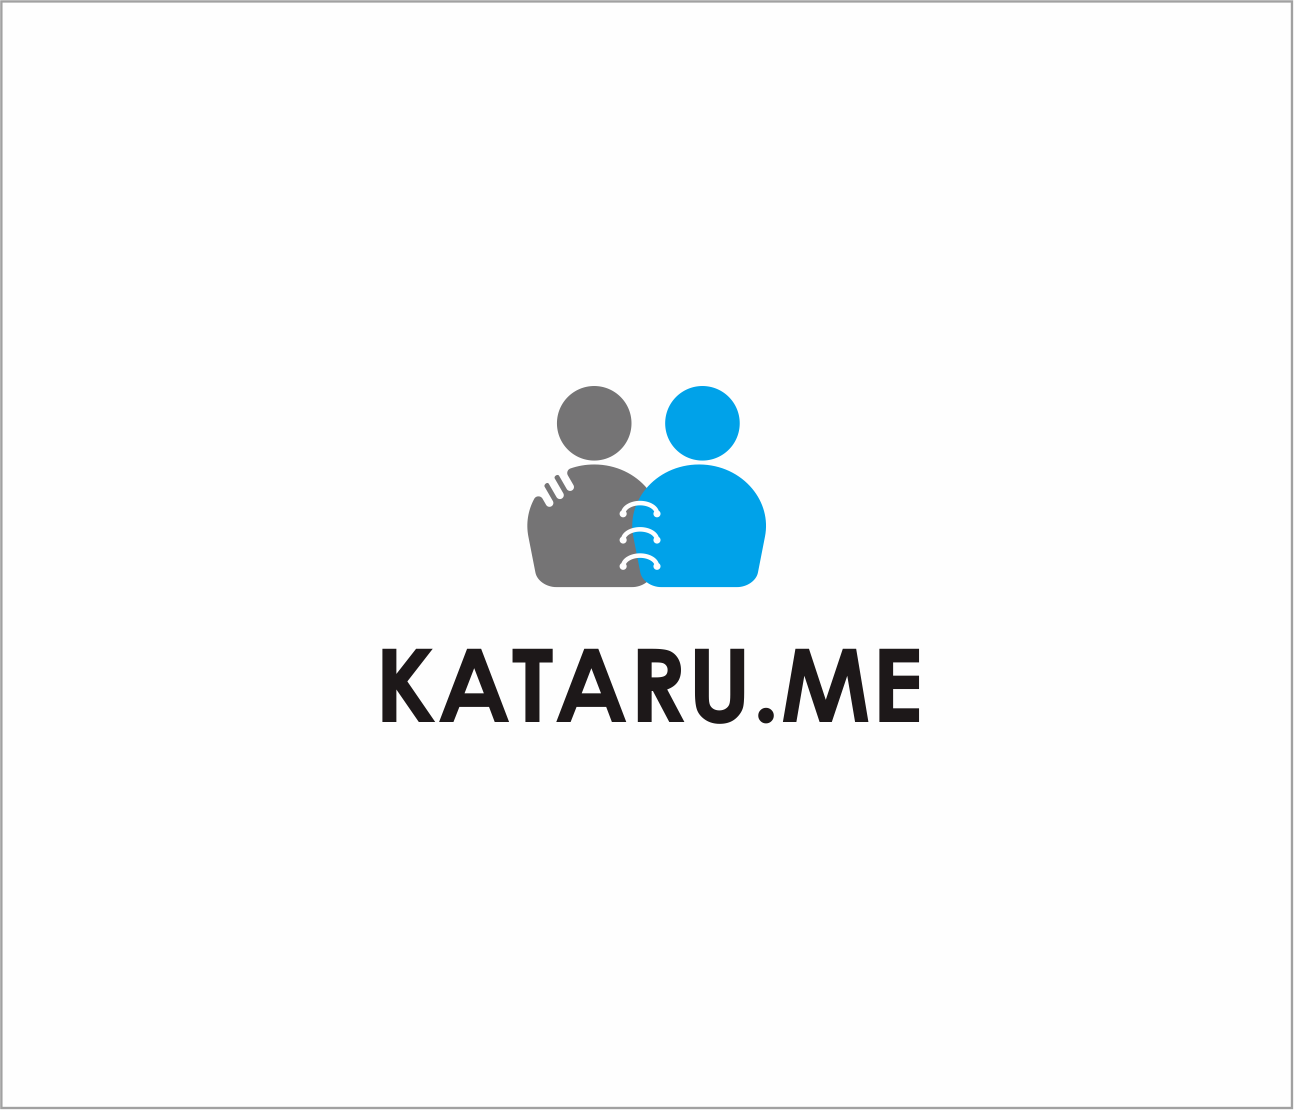 Logo Design by Armada Jamaluddin - Entry No. 94 in the Logo Design Contest Inspiring Logo Design for KATARU.ME.